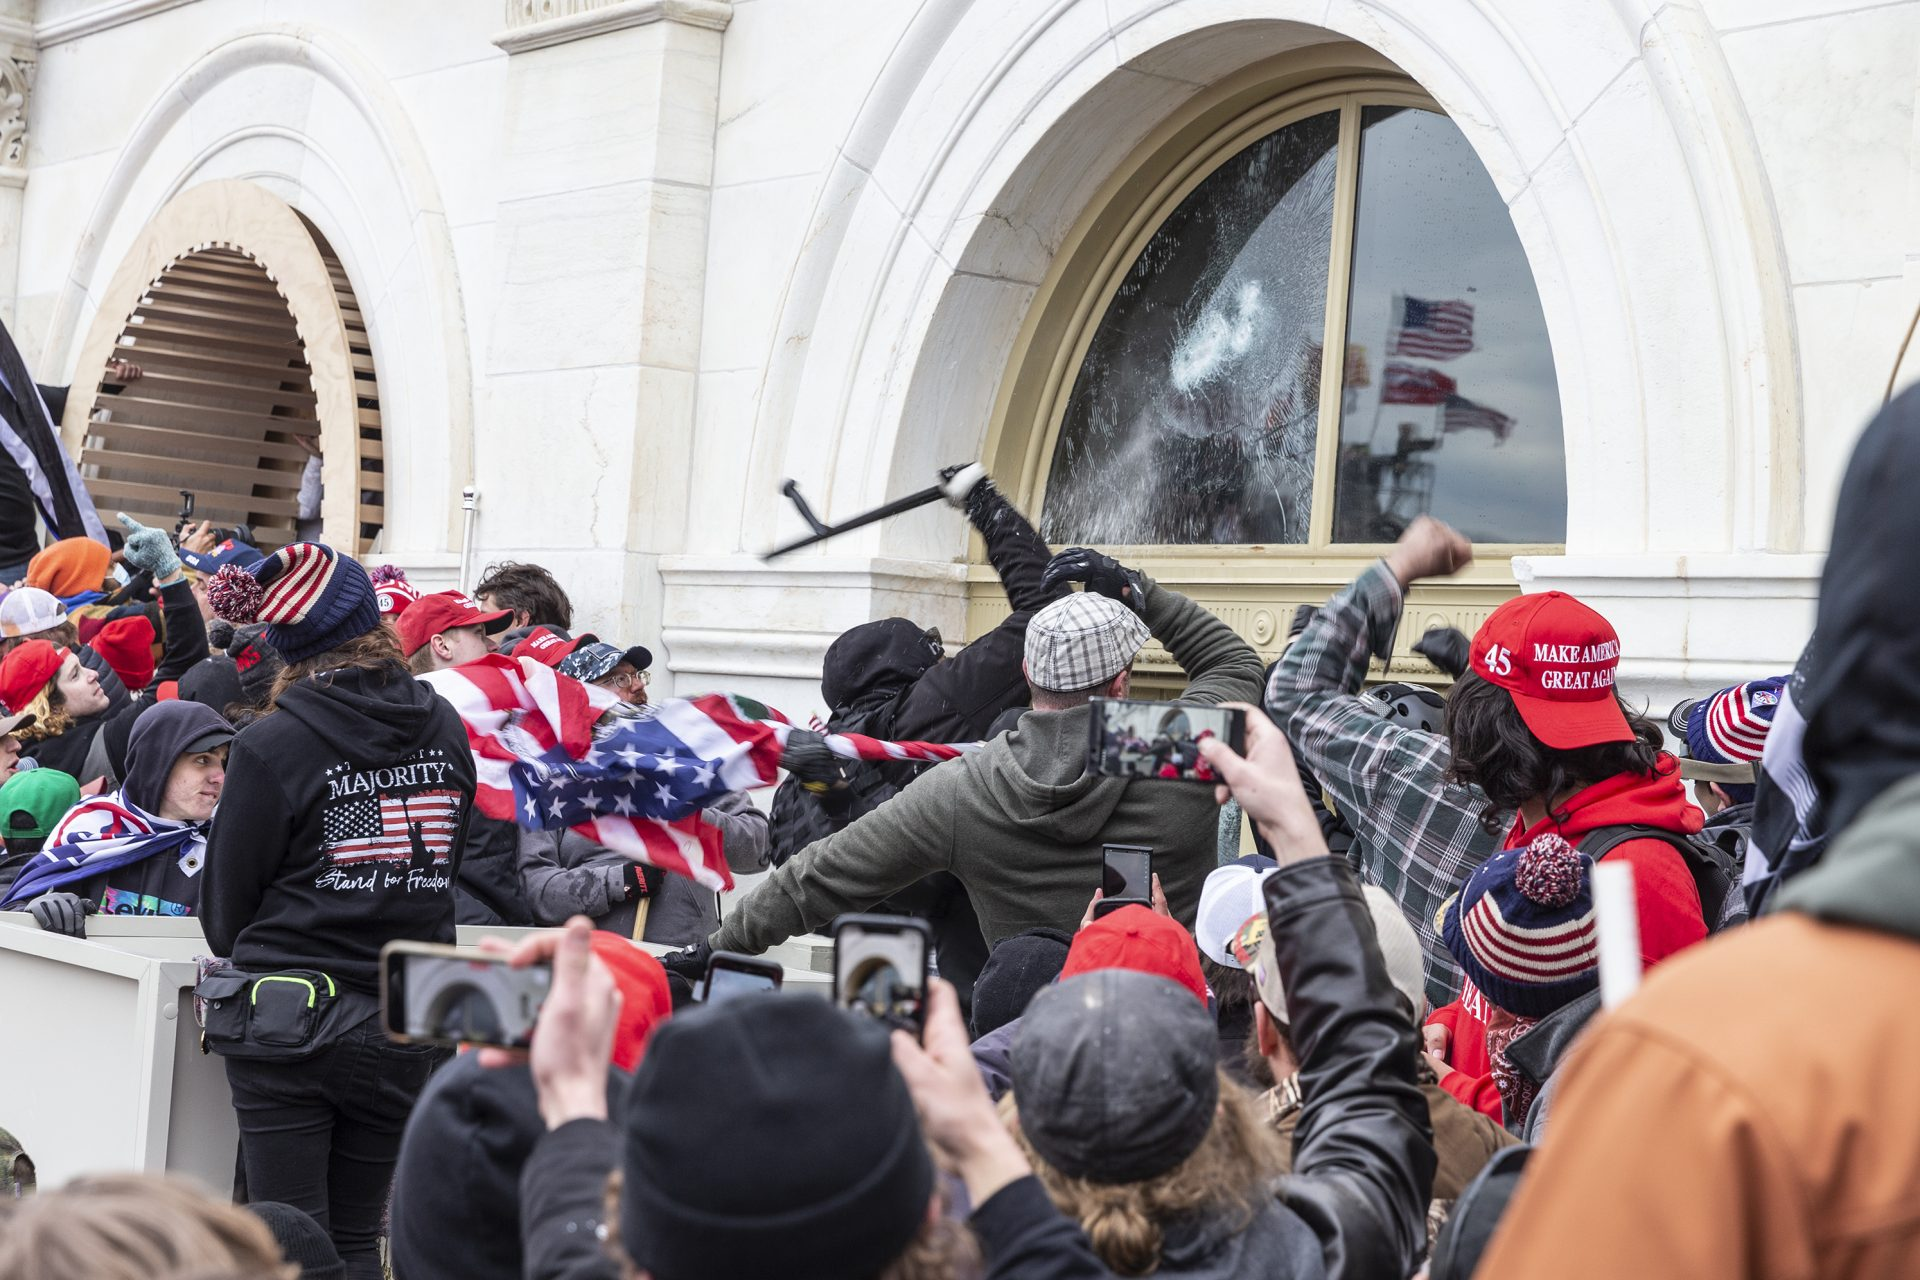 Prosecutors allege some people charged in the Capitol riot had batons. It's unclear how many people brought batons to the Capitol that day and how many batons were taken from law enforcement.